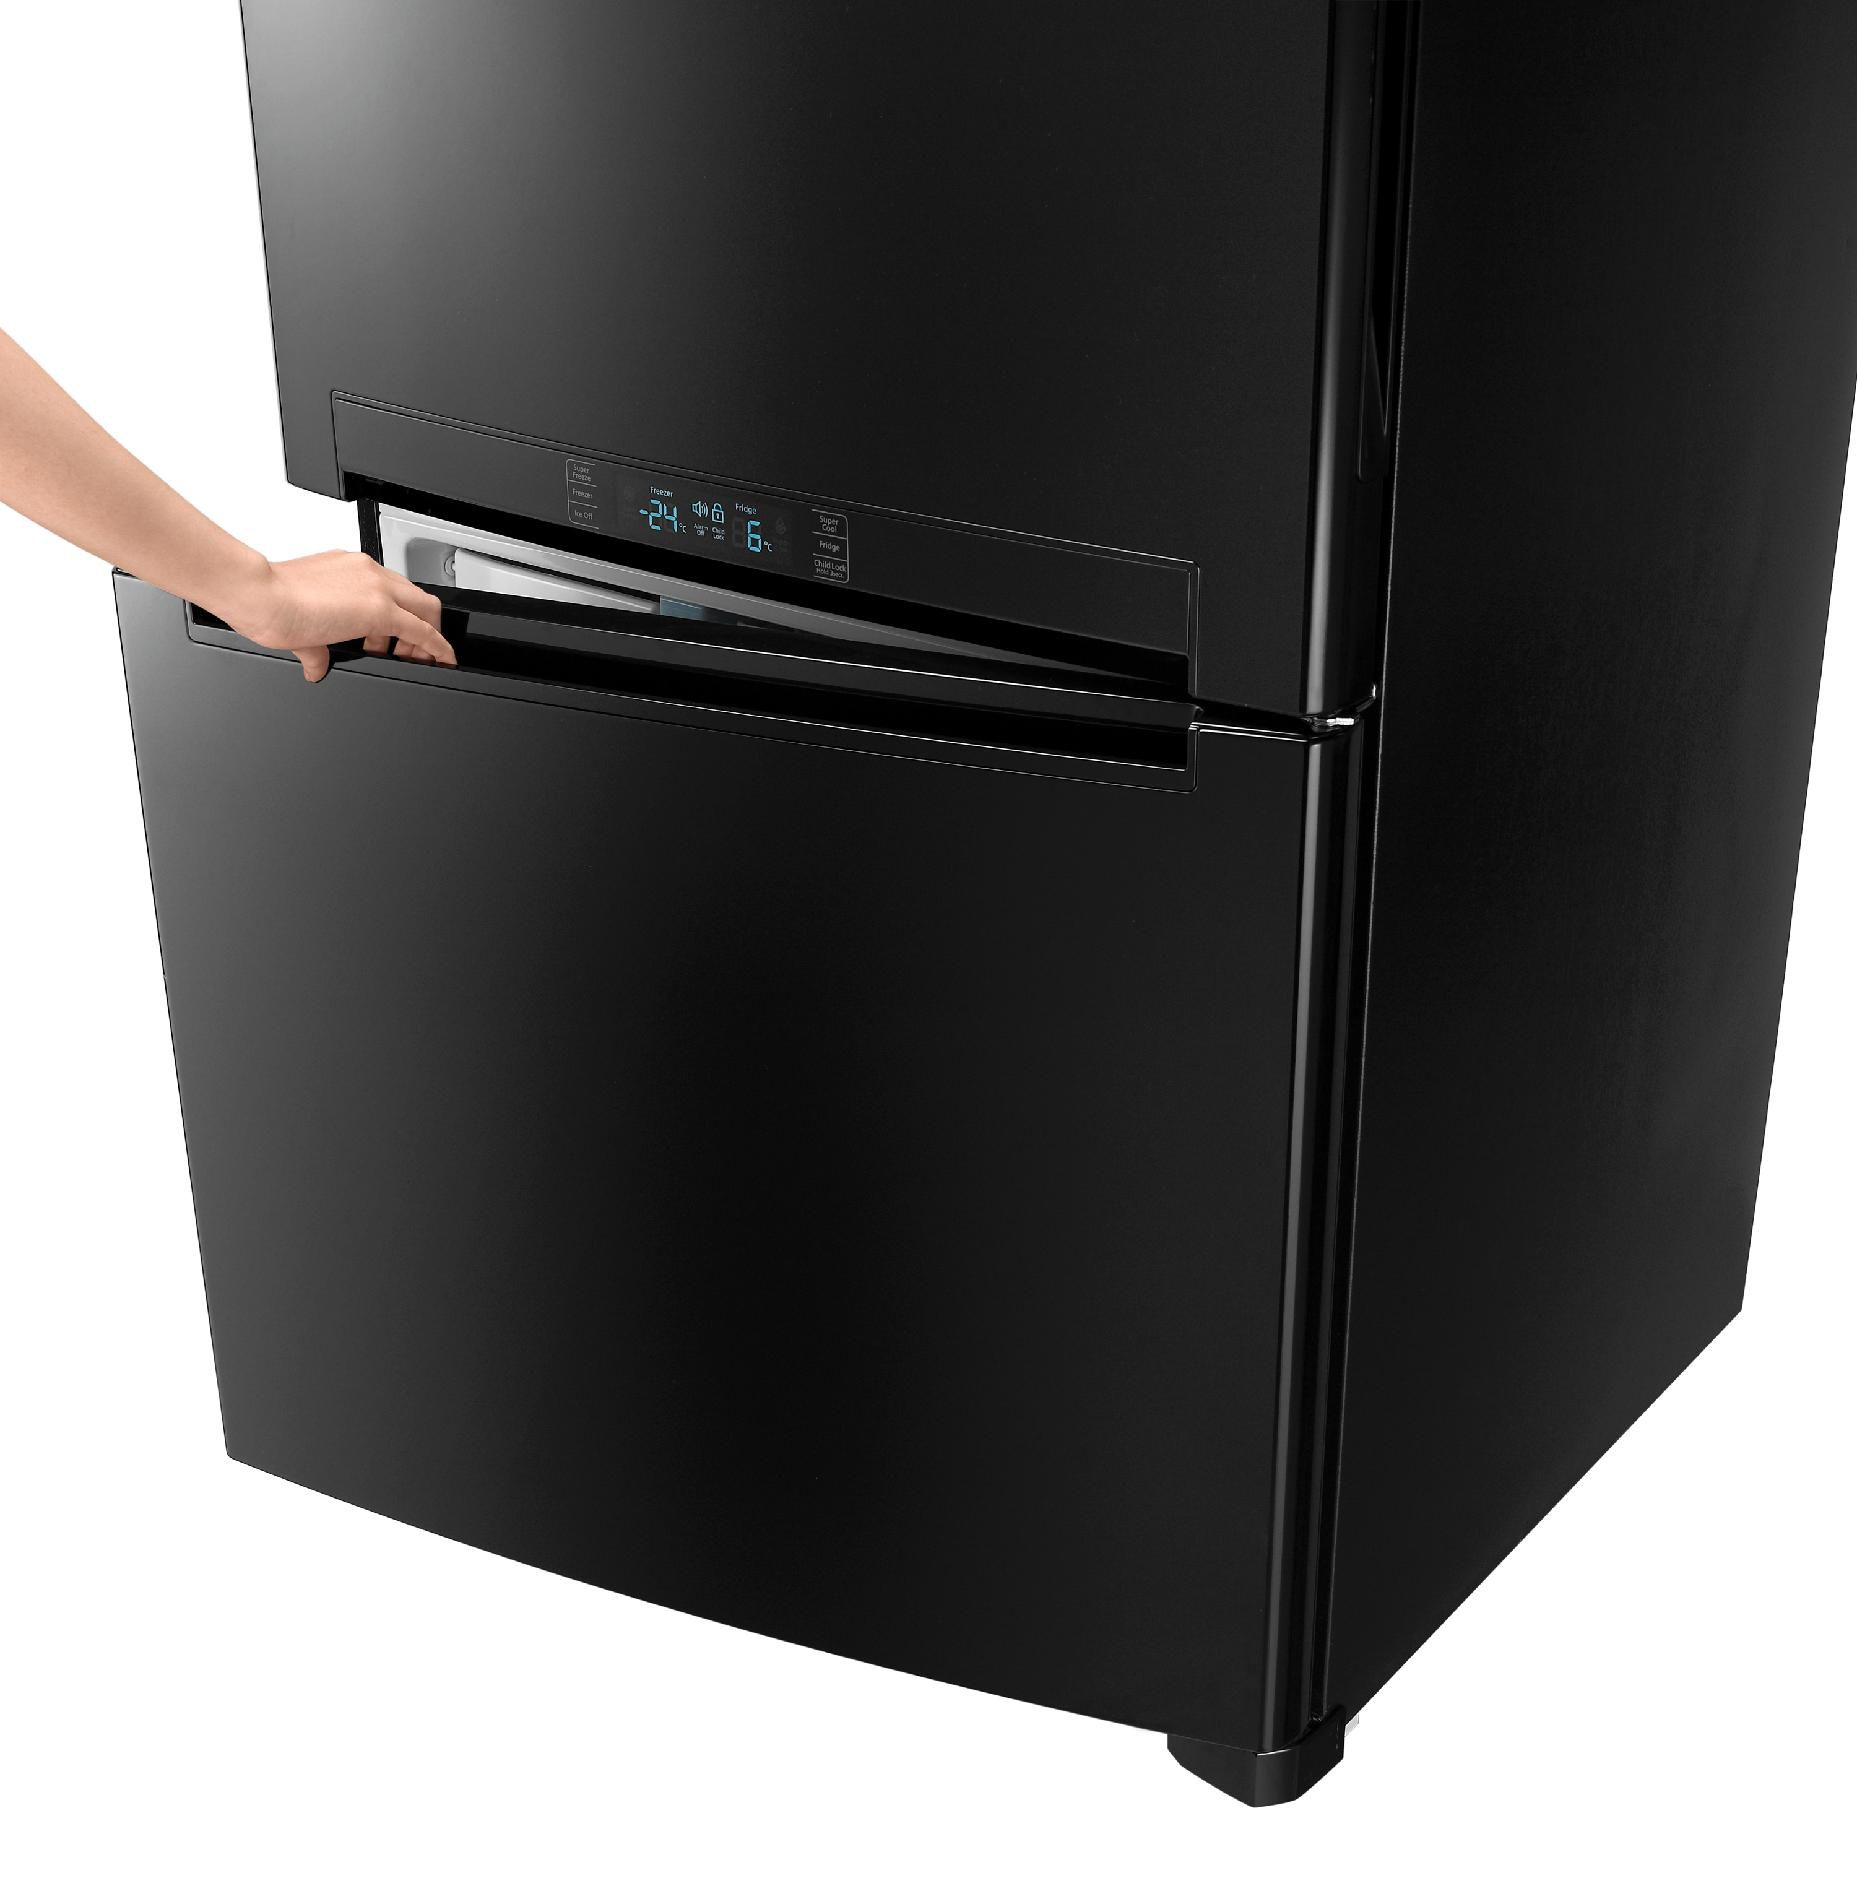 Samsung 18 cu. ft. Bottom Freezer with Side Swing Freezer Door - Black